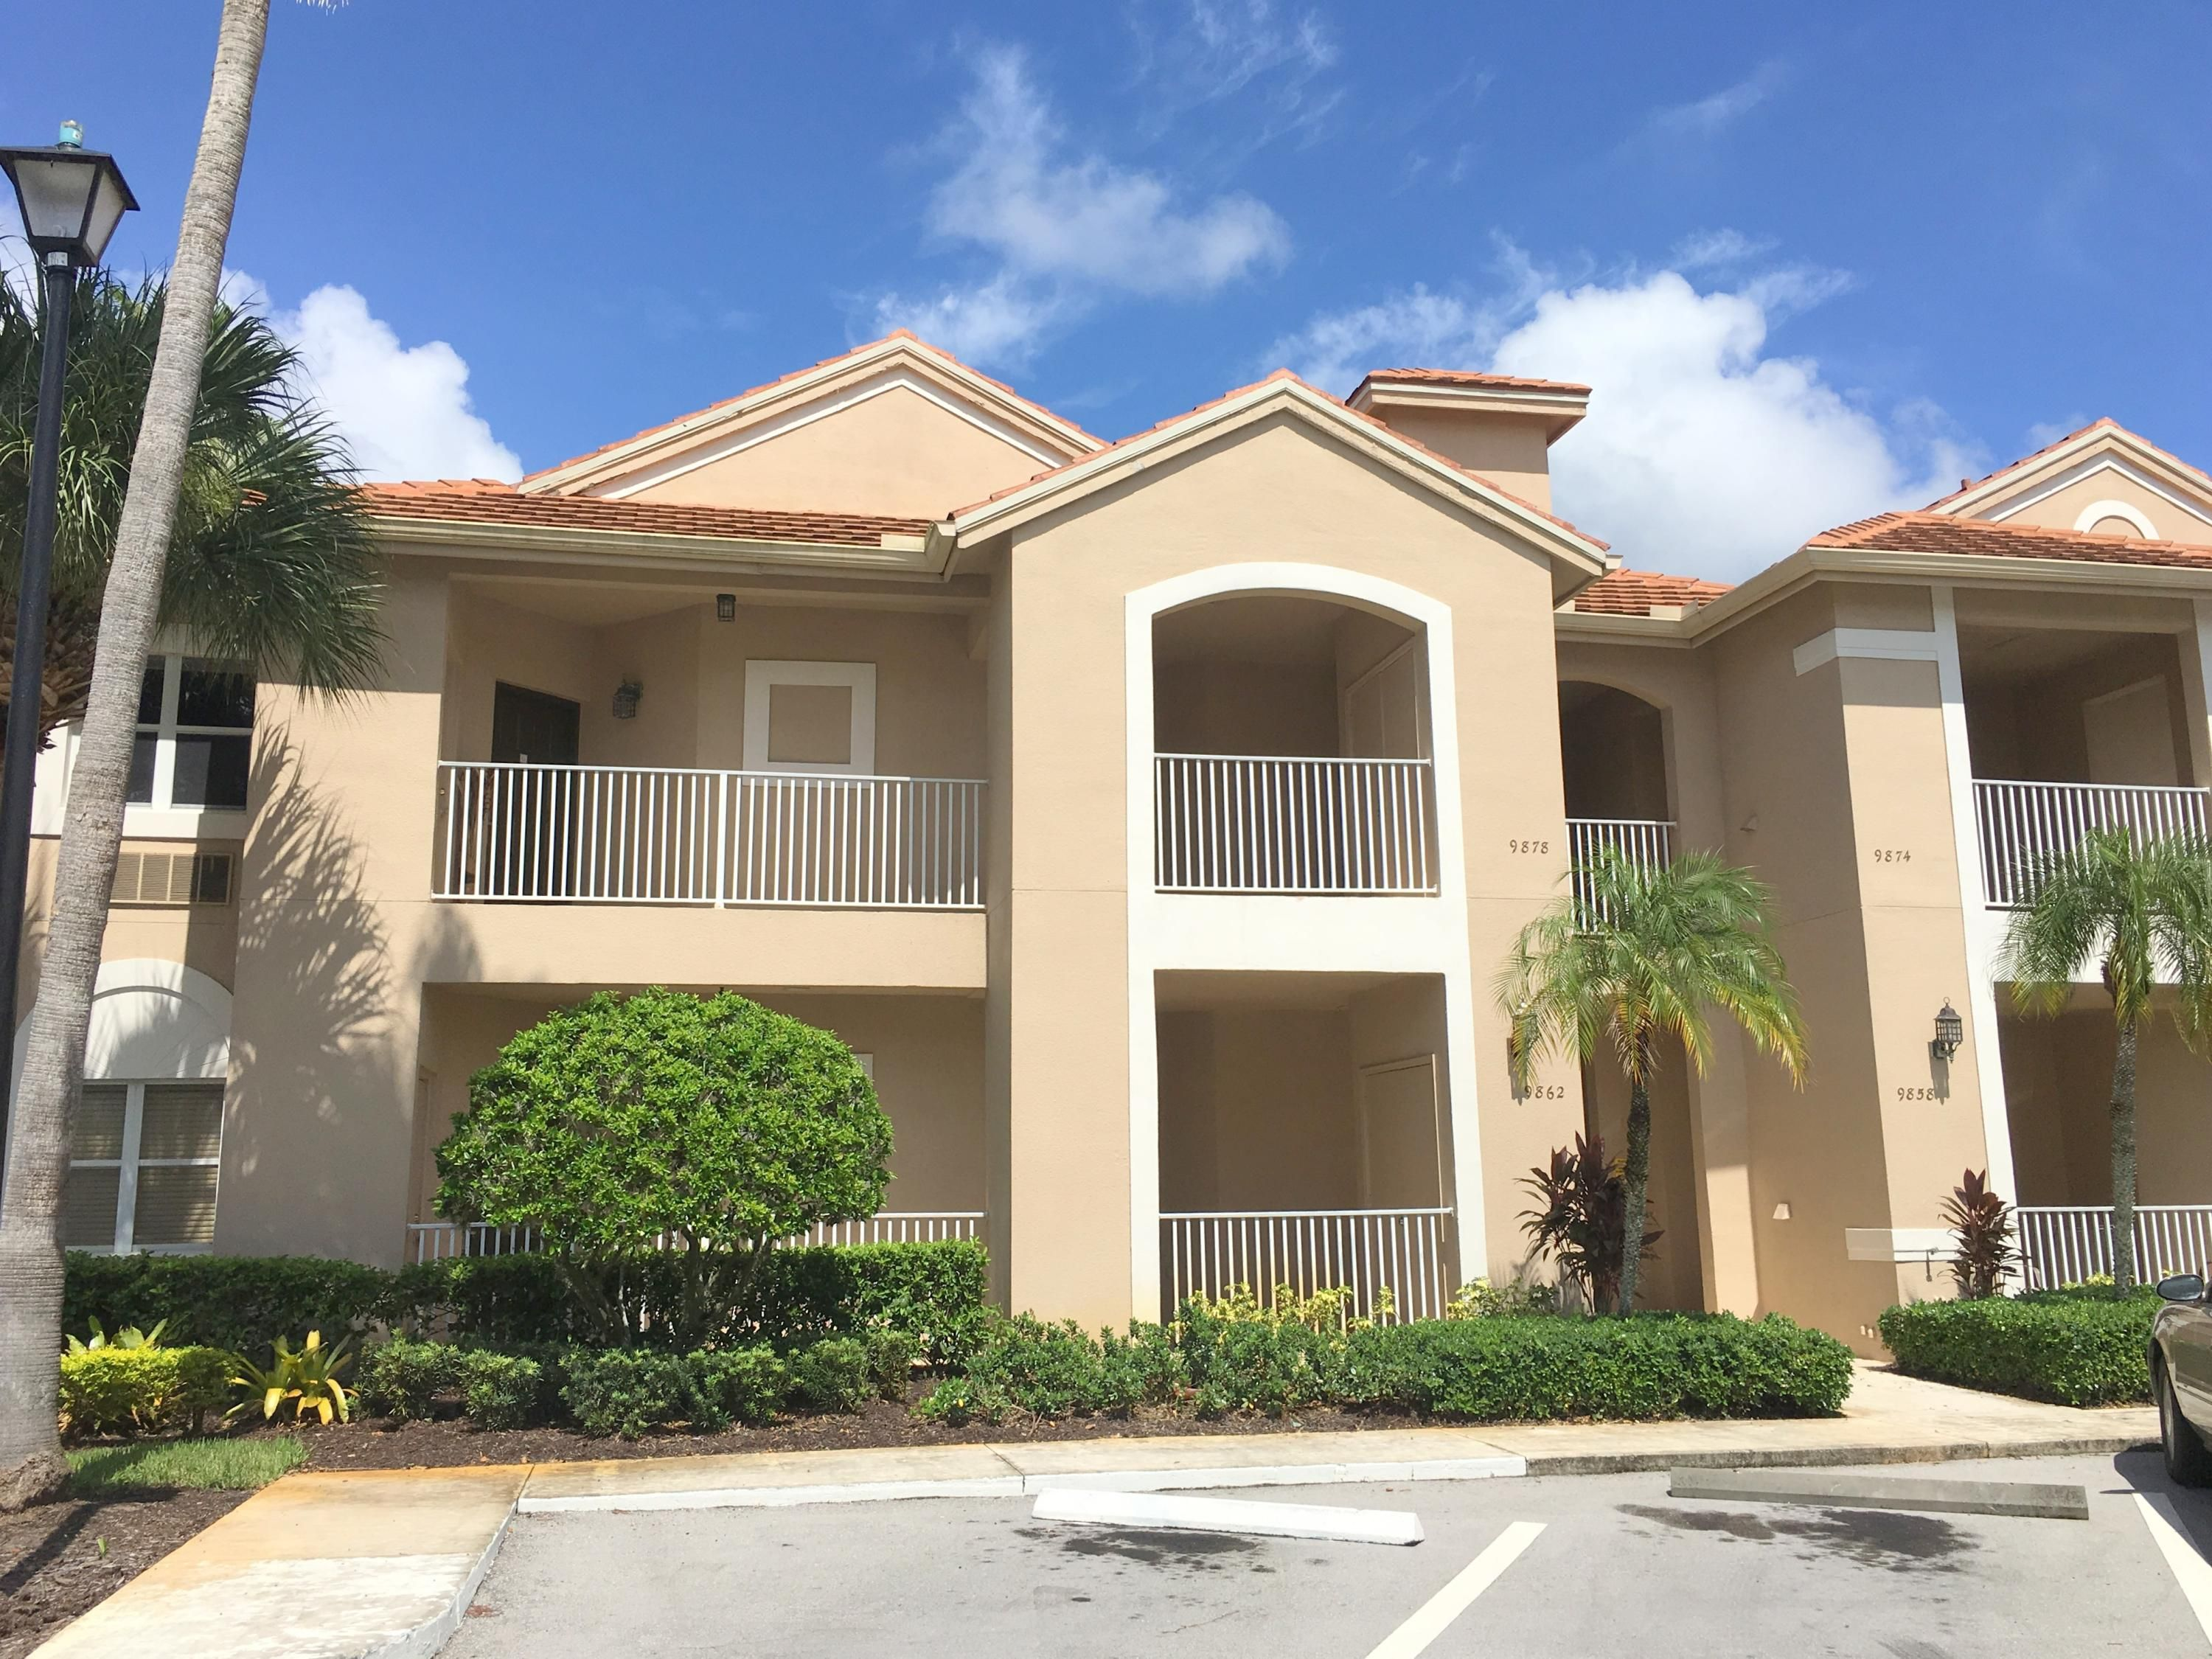 For Rent Annually First Floor 1 Bedroom 1 Bath Furnished Condo With Full Kitchen Across From Pool Electric Water Cable Real Estate Florida Port St Lucie Florida